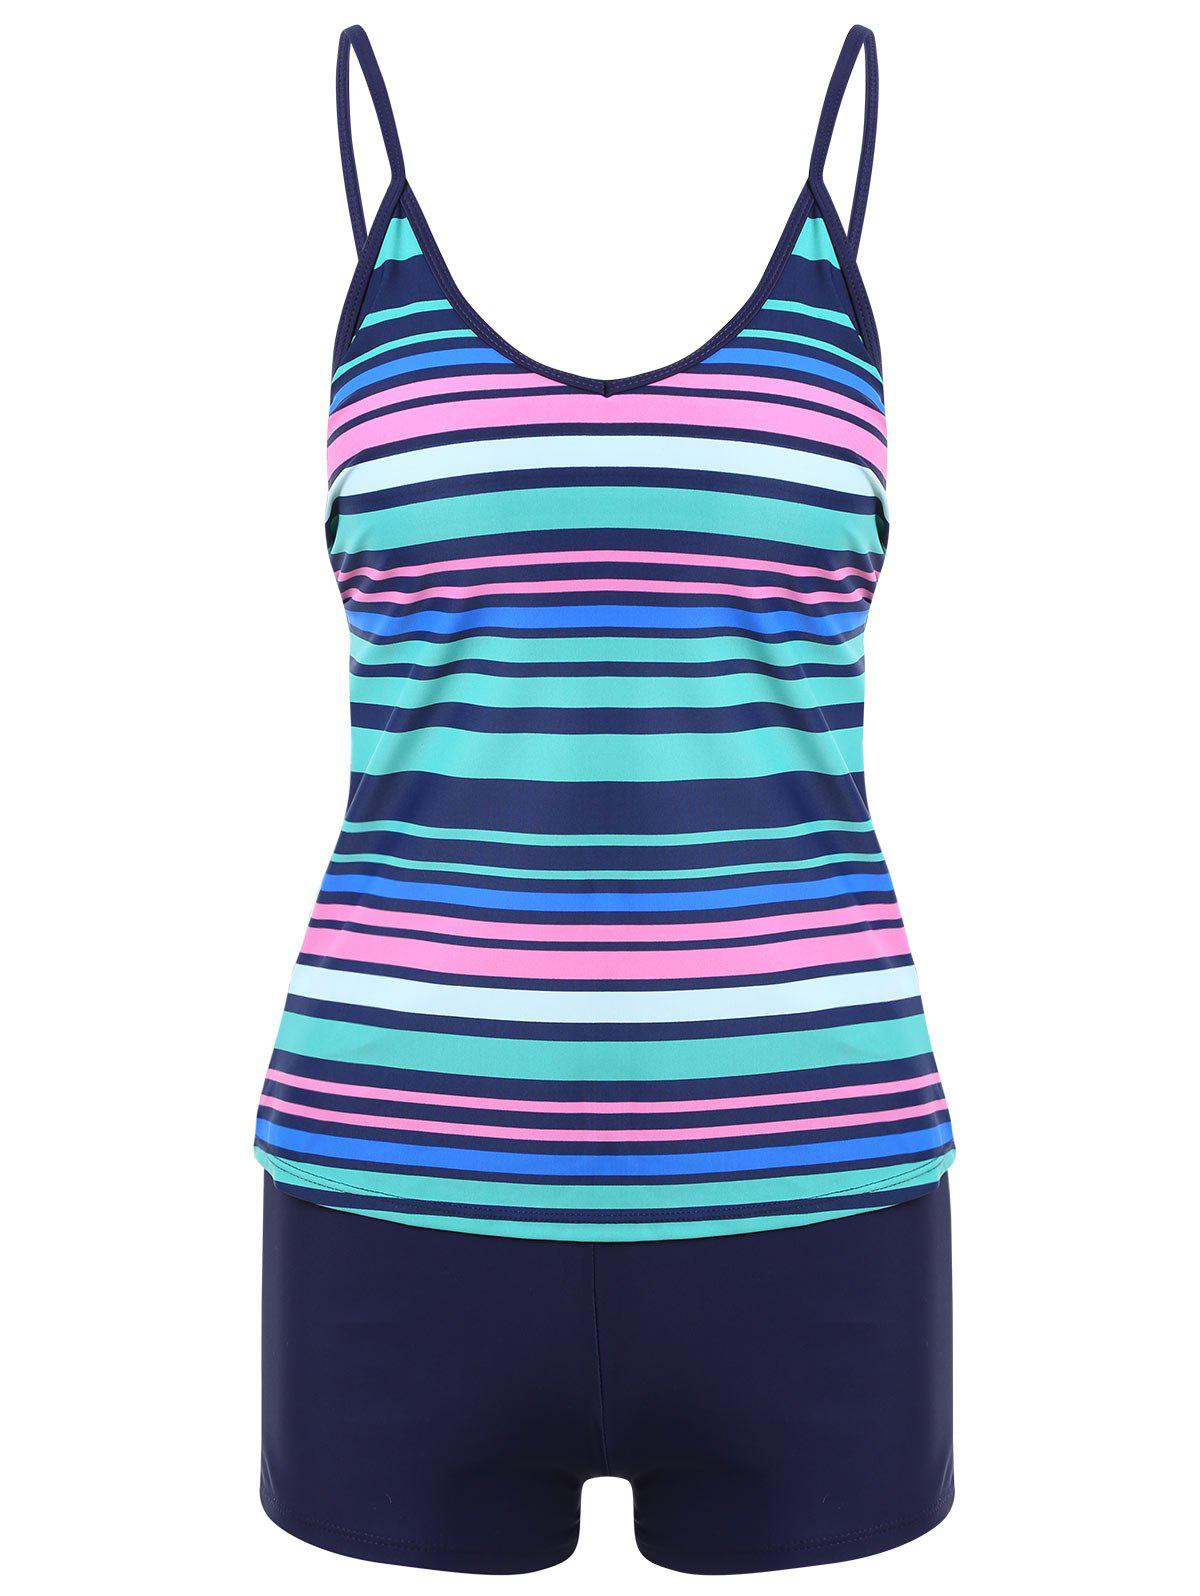 Striped Boyshorts Tankini Set - COLORMIX L